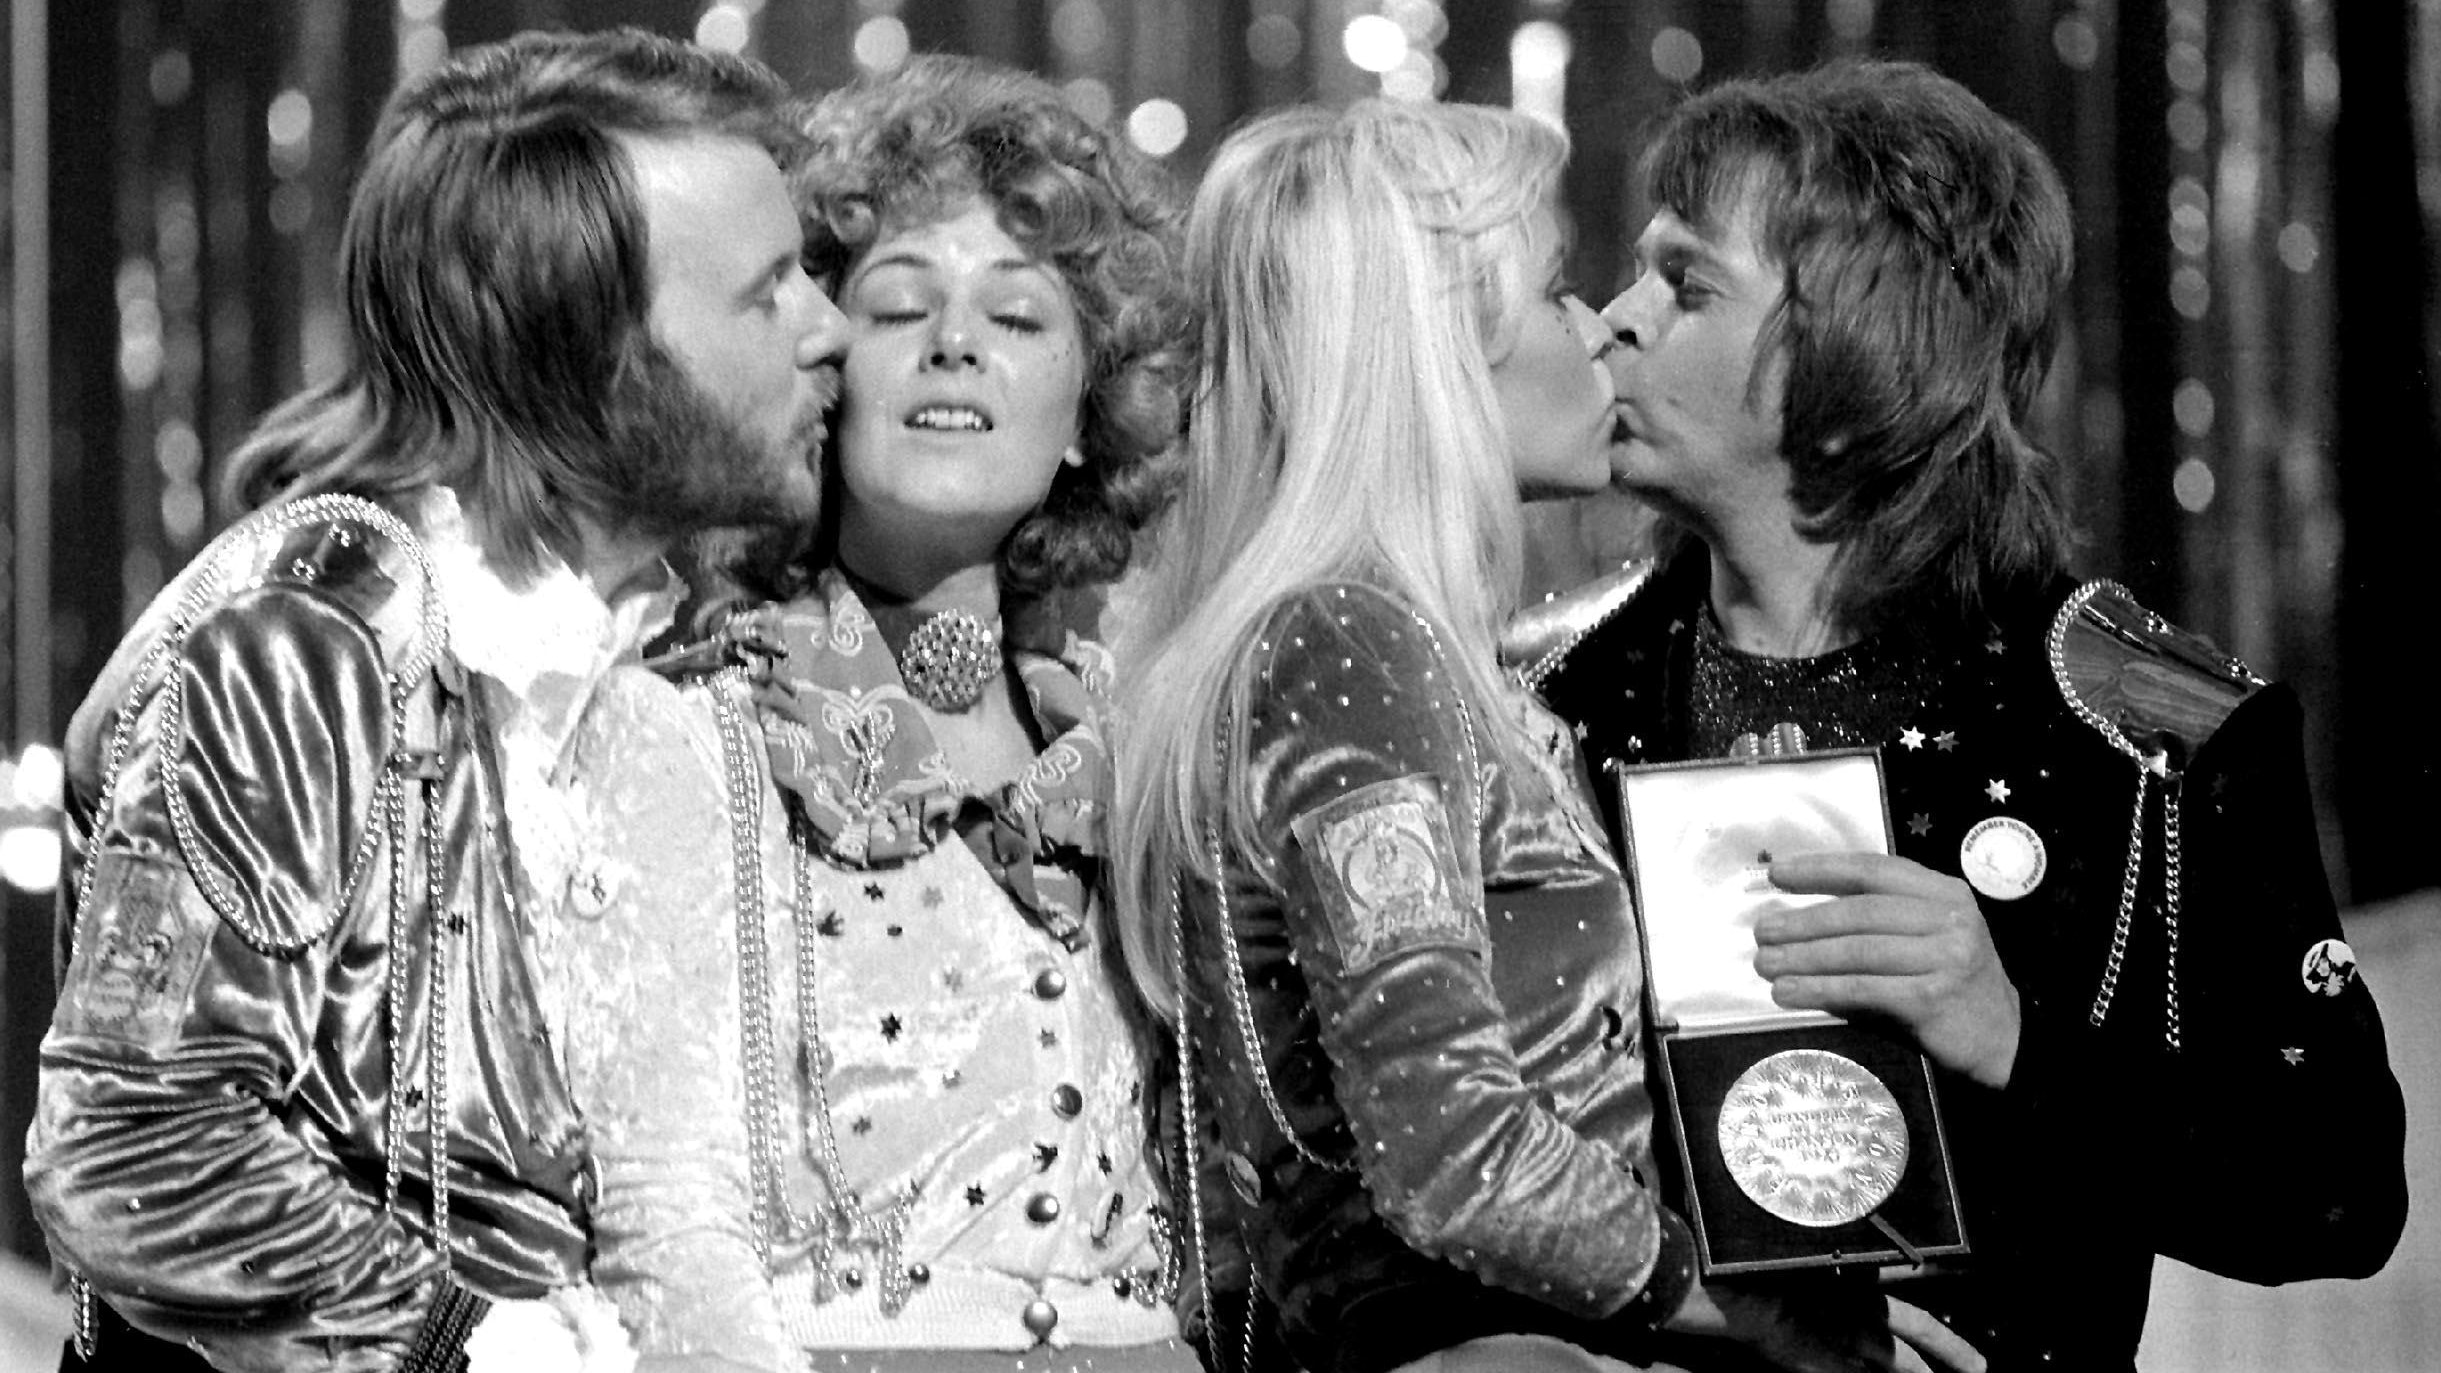 Dancing Queen hitmakers ABBA to make new music after 35 years